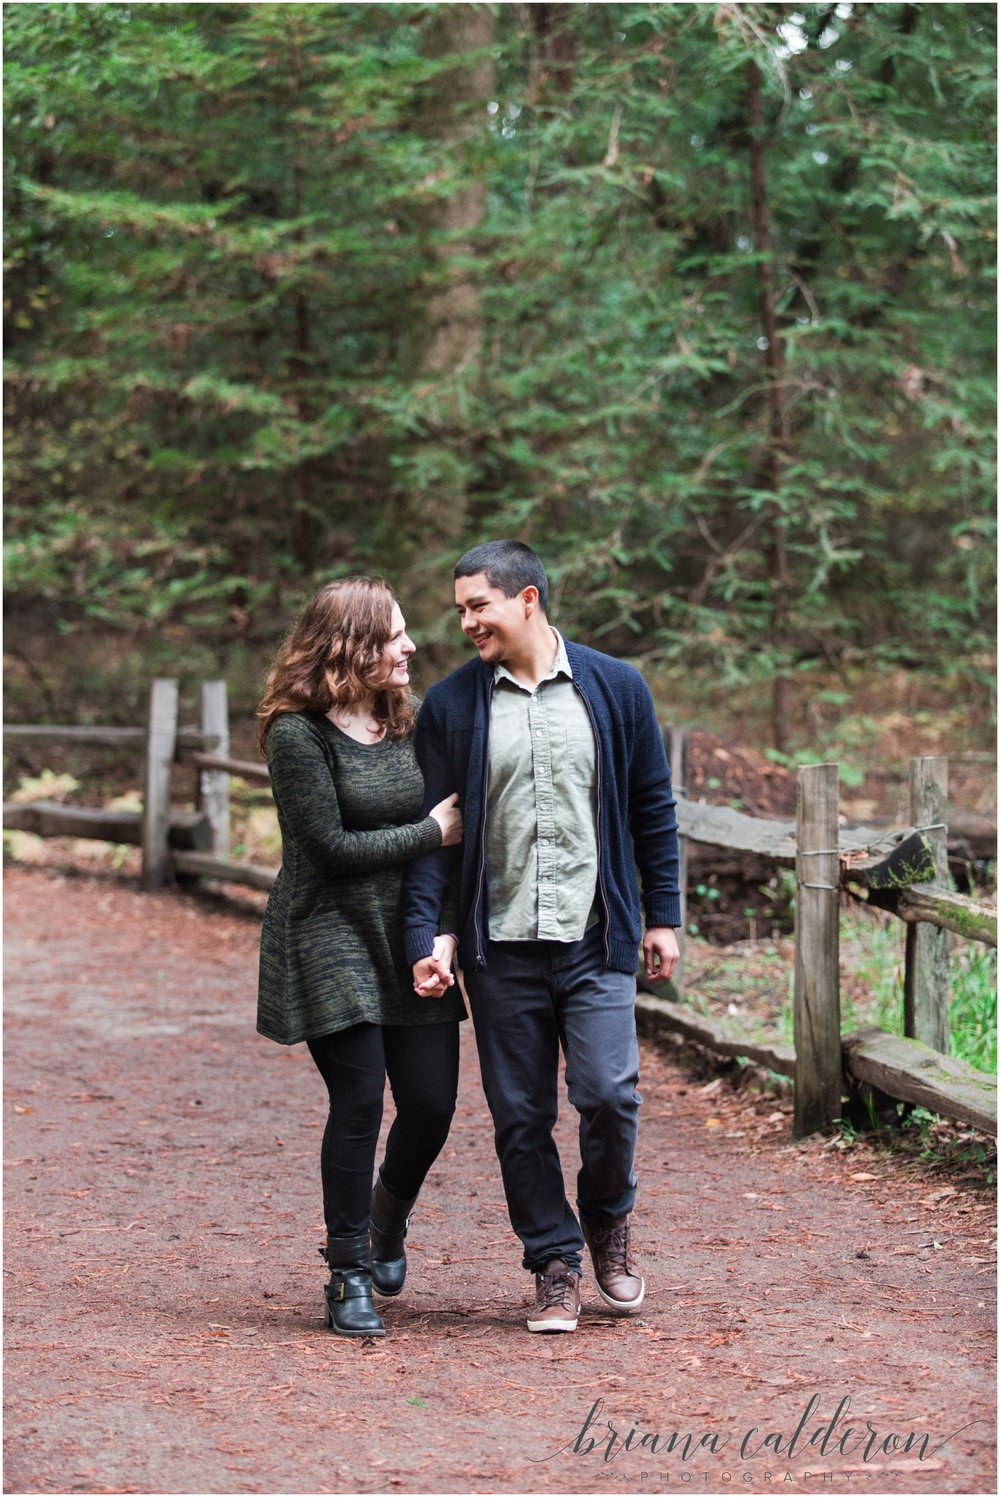 Engagement pictures at Henry Cowell Redwoods in Felton, CA by Briana Calderon Photography_1315.jpg